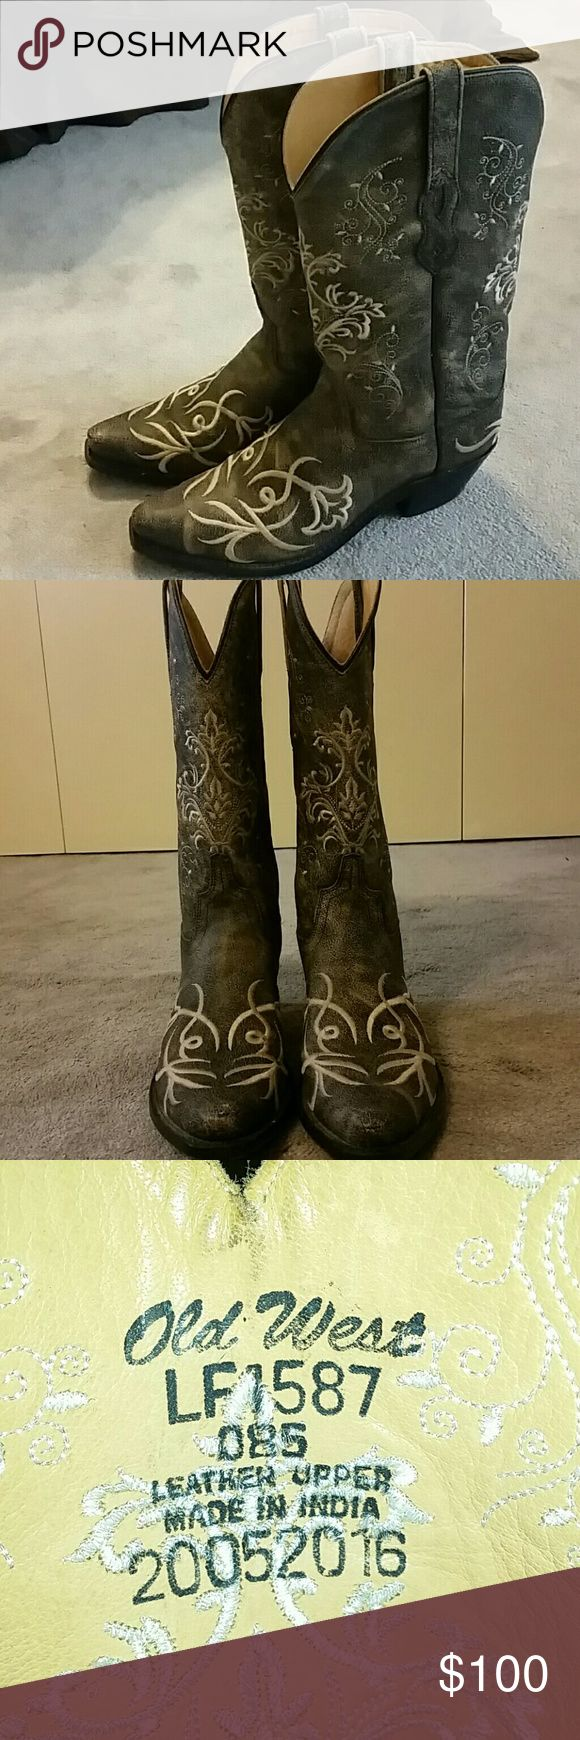 Ladies Old West boots Very cute boots! Only worn once for a wedding. Still in perfect condition! Old West Shoes